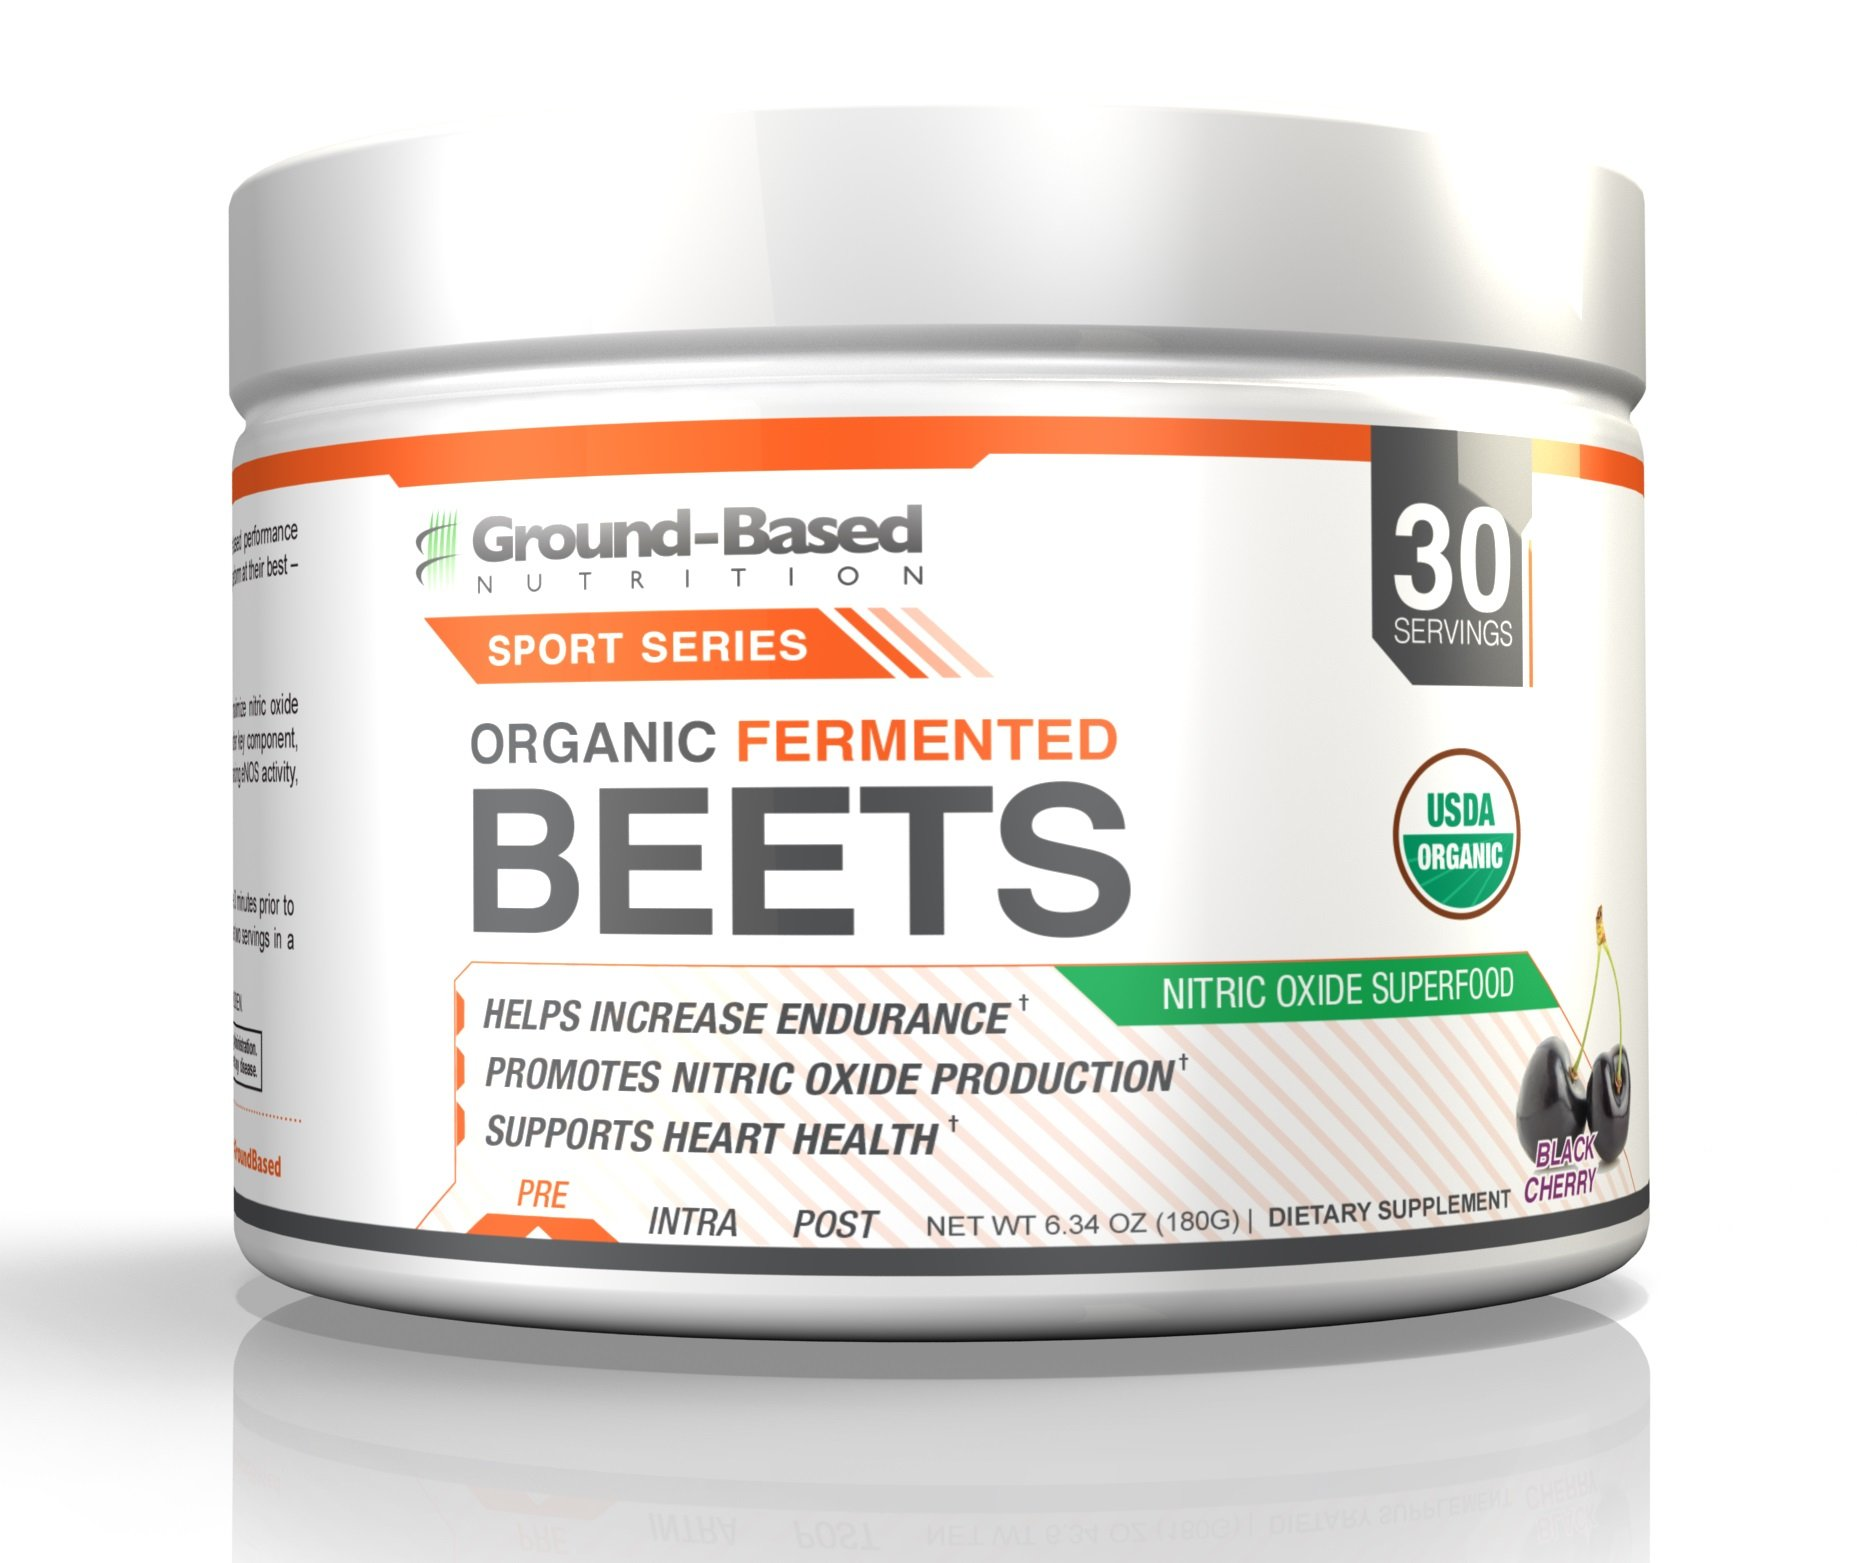 Ground-Based Nutrition Certified Organic Fermented Beet Powder, Nitric Oxide Superfood: Created with Endurance Athletes in Mind, Increases Energy, Boosts Stamina, Performance, No Added Sugar, 30 svgs